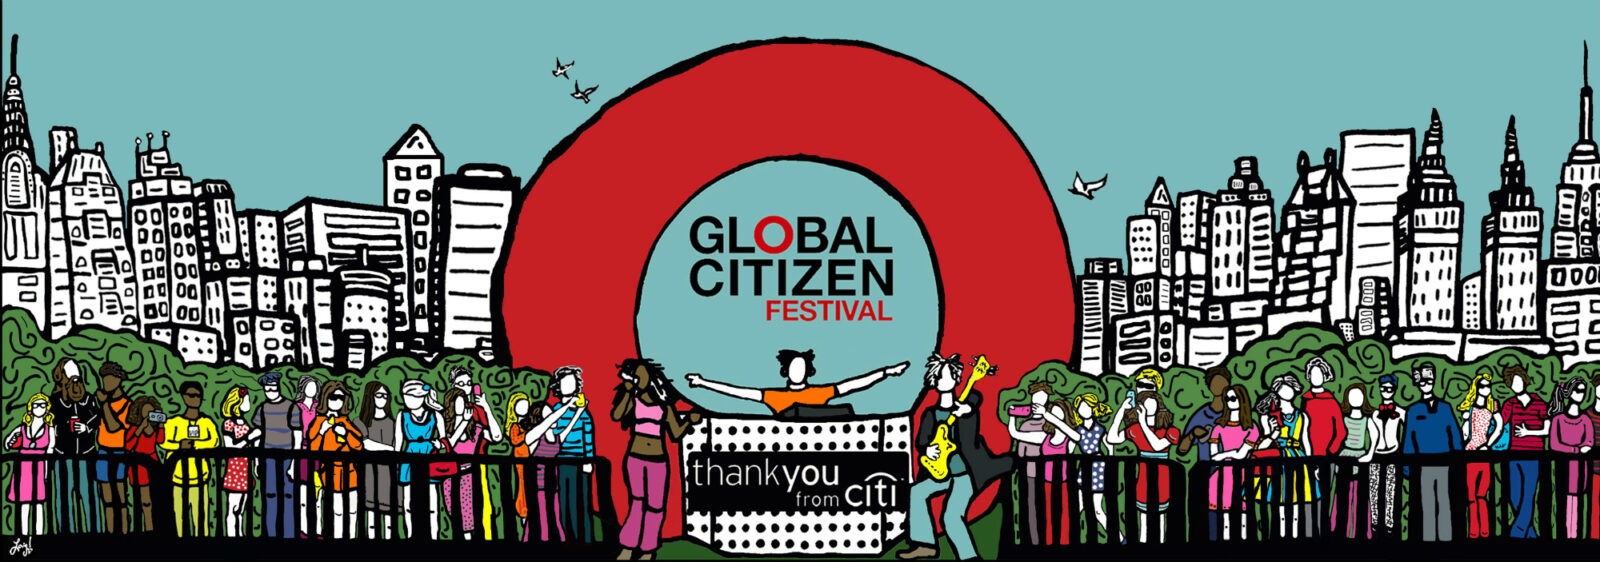 Global Citizen Concert 2015 NYC